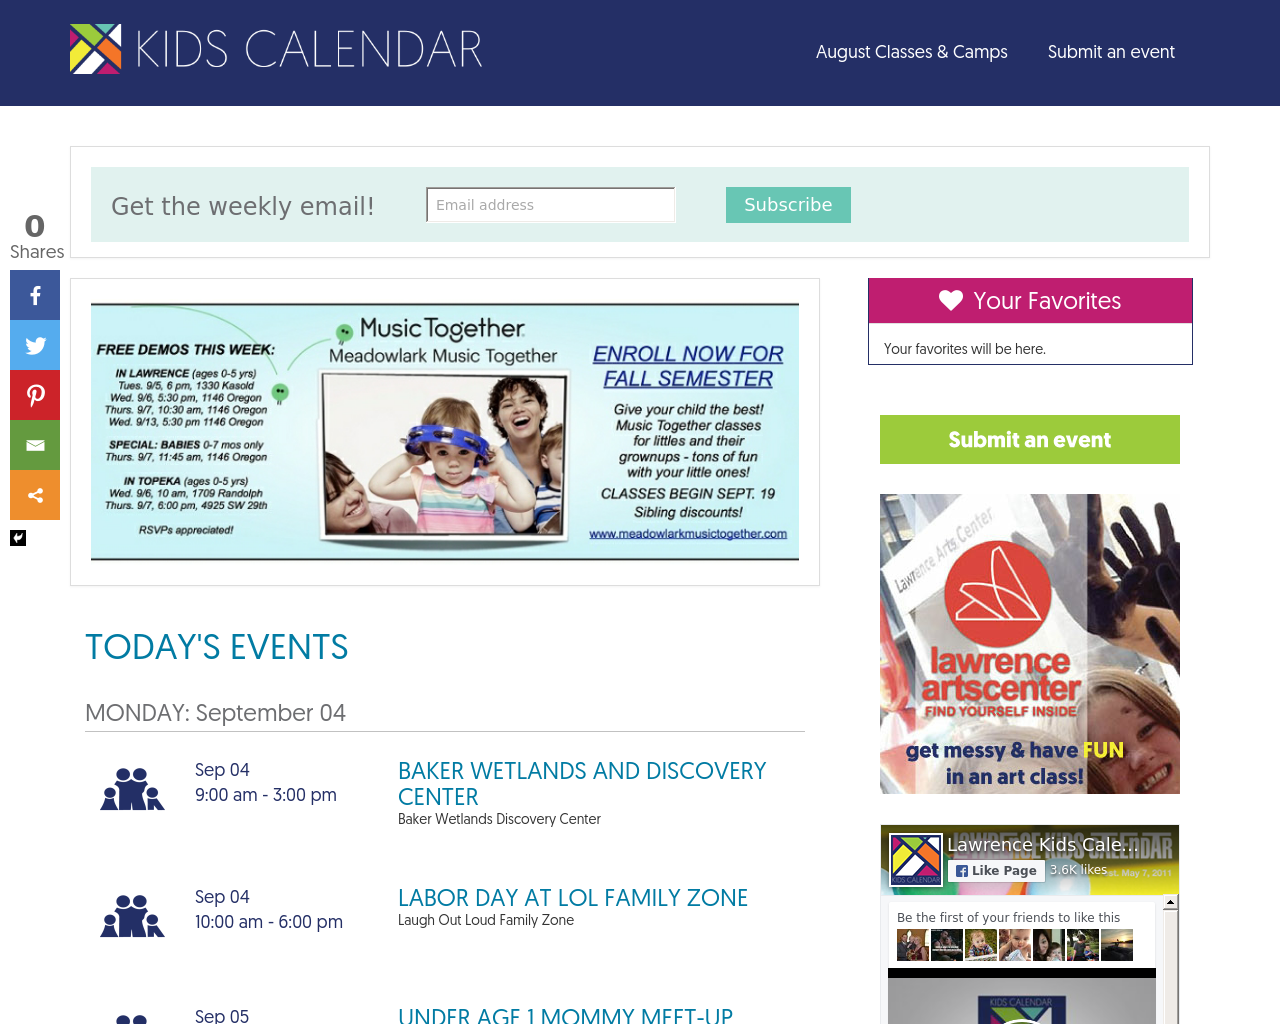 Lawrence-Kids-Calendar-Advertising-Reviews-Pricing